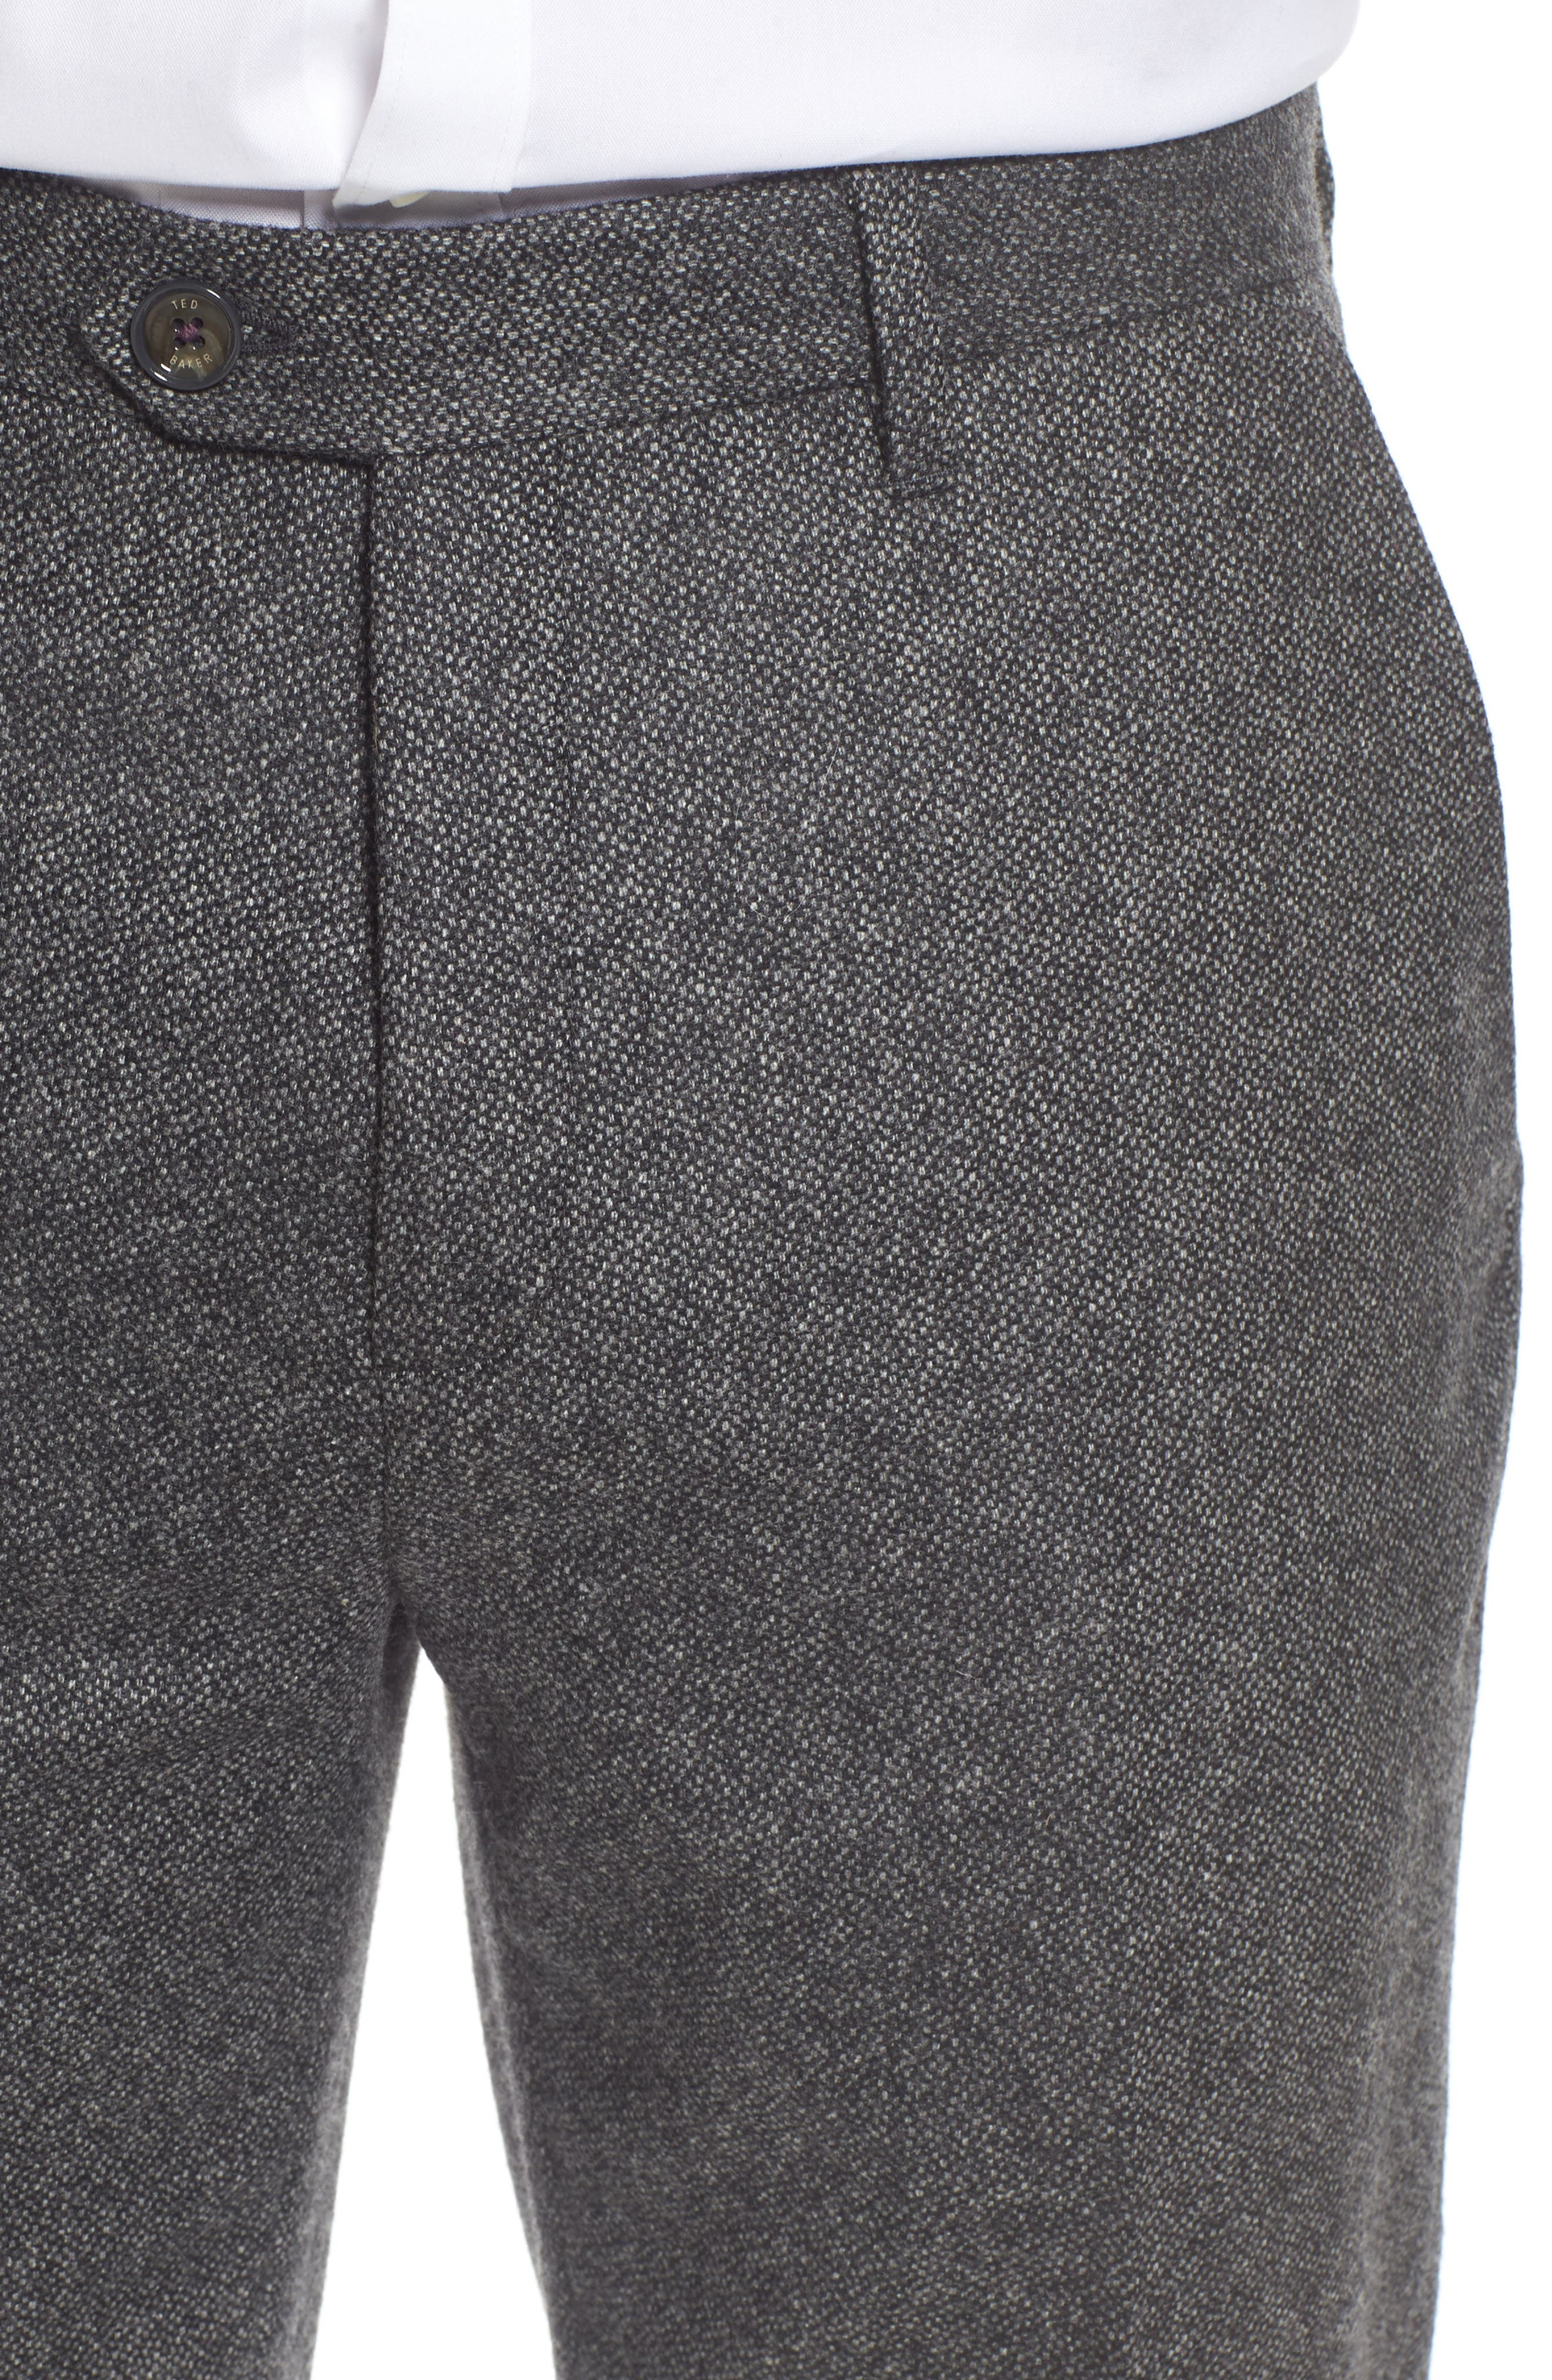 Modern Slim Fit Trousers,                             Alternate thumbnail 4, color,                             Charcoal